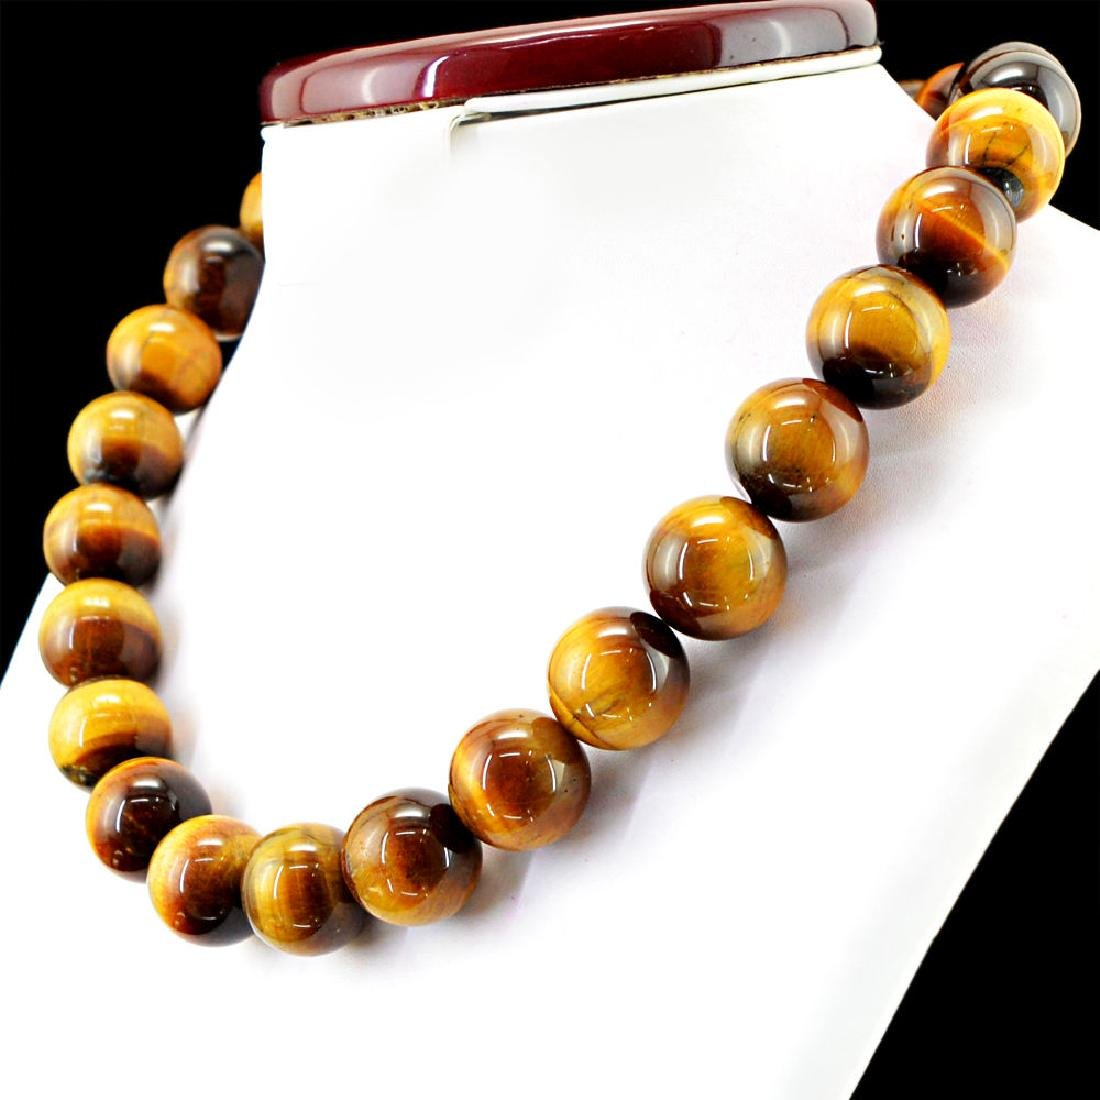 NATURAL RICH GOLDEN TIGER EYE UNTREATED ROUND SHAPED - 2